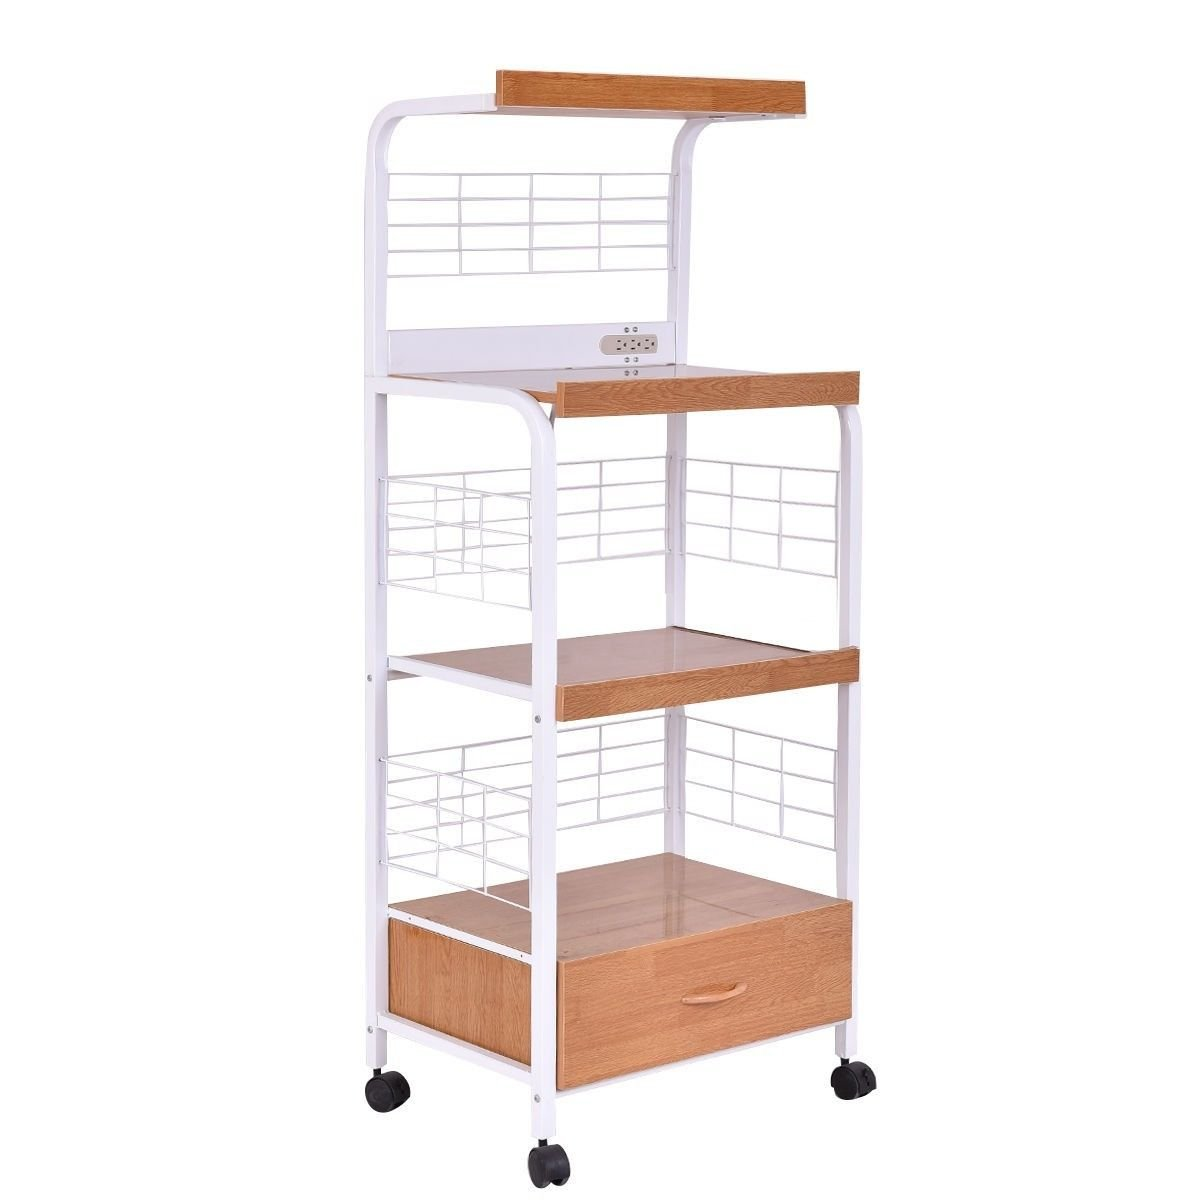 """62"""" Portable Kitchen Microwave Oven Stand With Electric Outlet Bakers Rack 3 Layer Design Large Storage Space Freestanding Rolling Storage Utility Cart Workstation Shelf Pull-Out Drawer Sturdy Durable"""